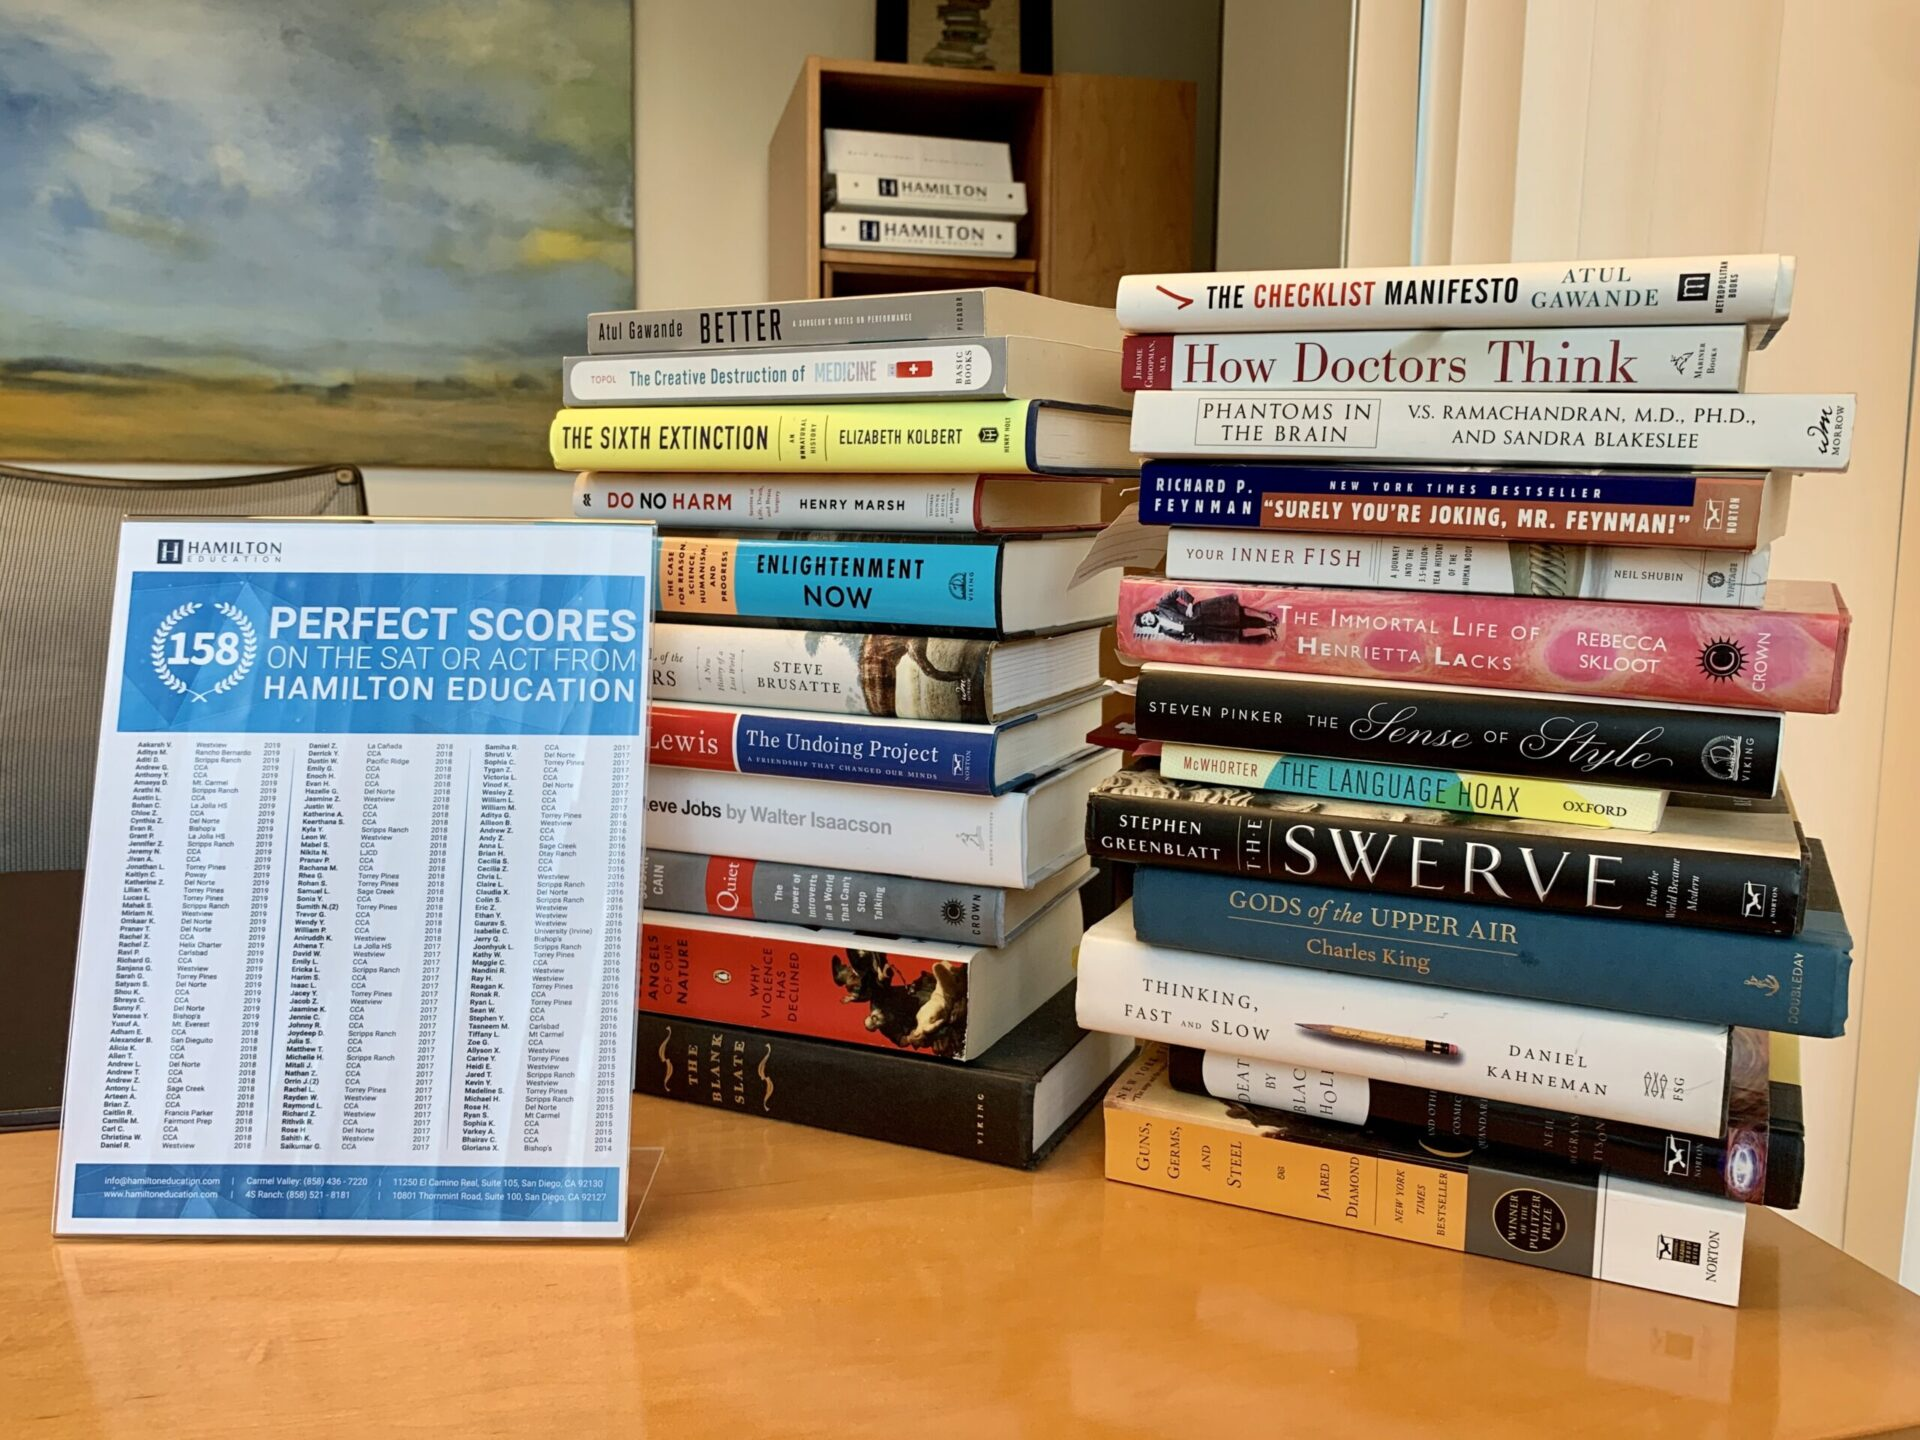 The Books on My Desk: Why Data is Better than Intuition, and Why Hamilton Education Has So Many Perfect Scores